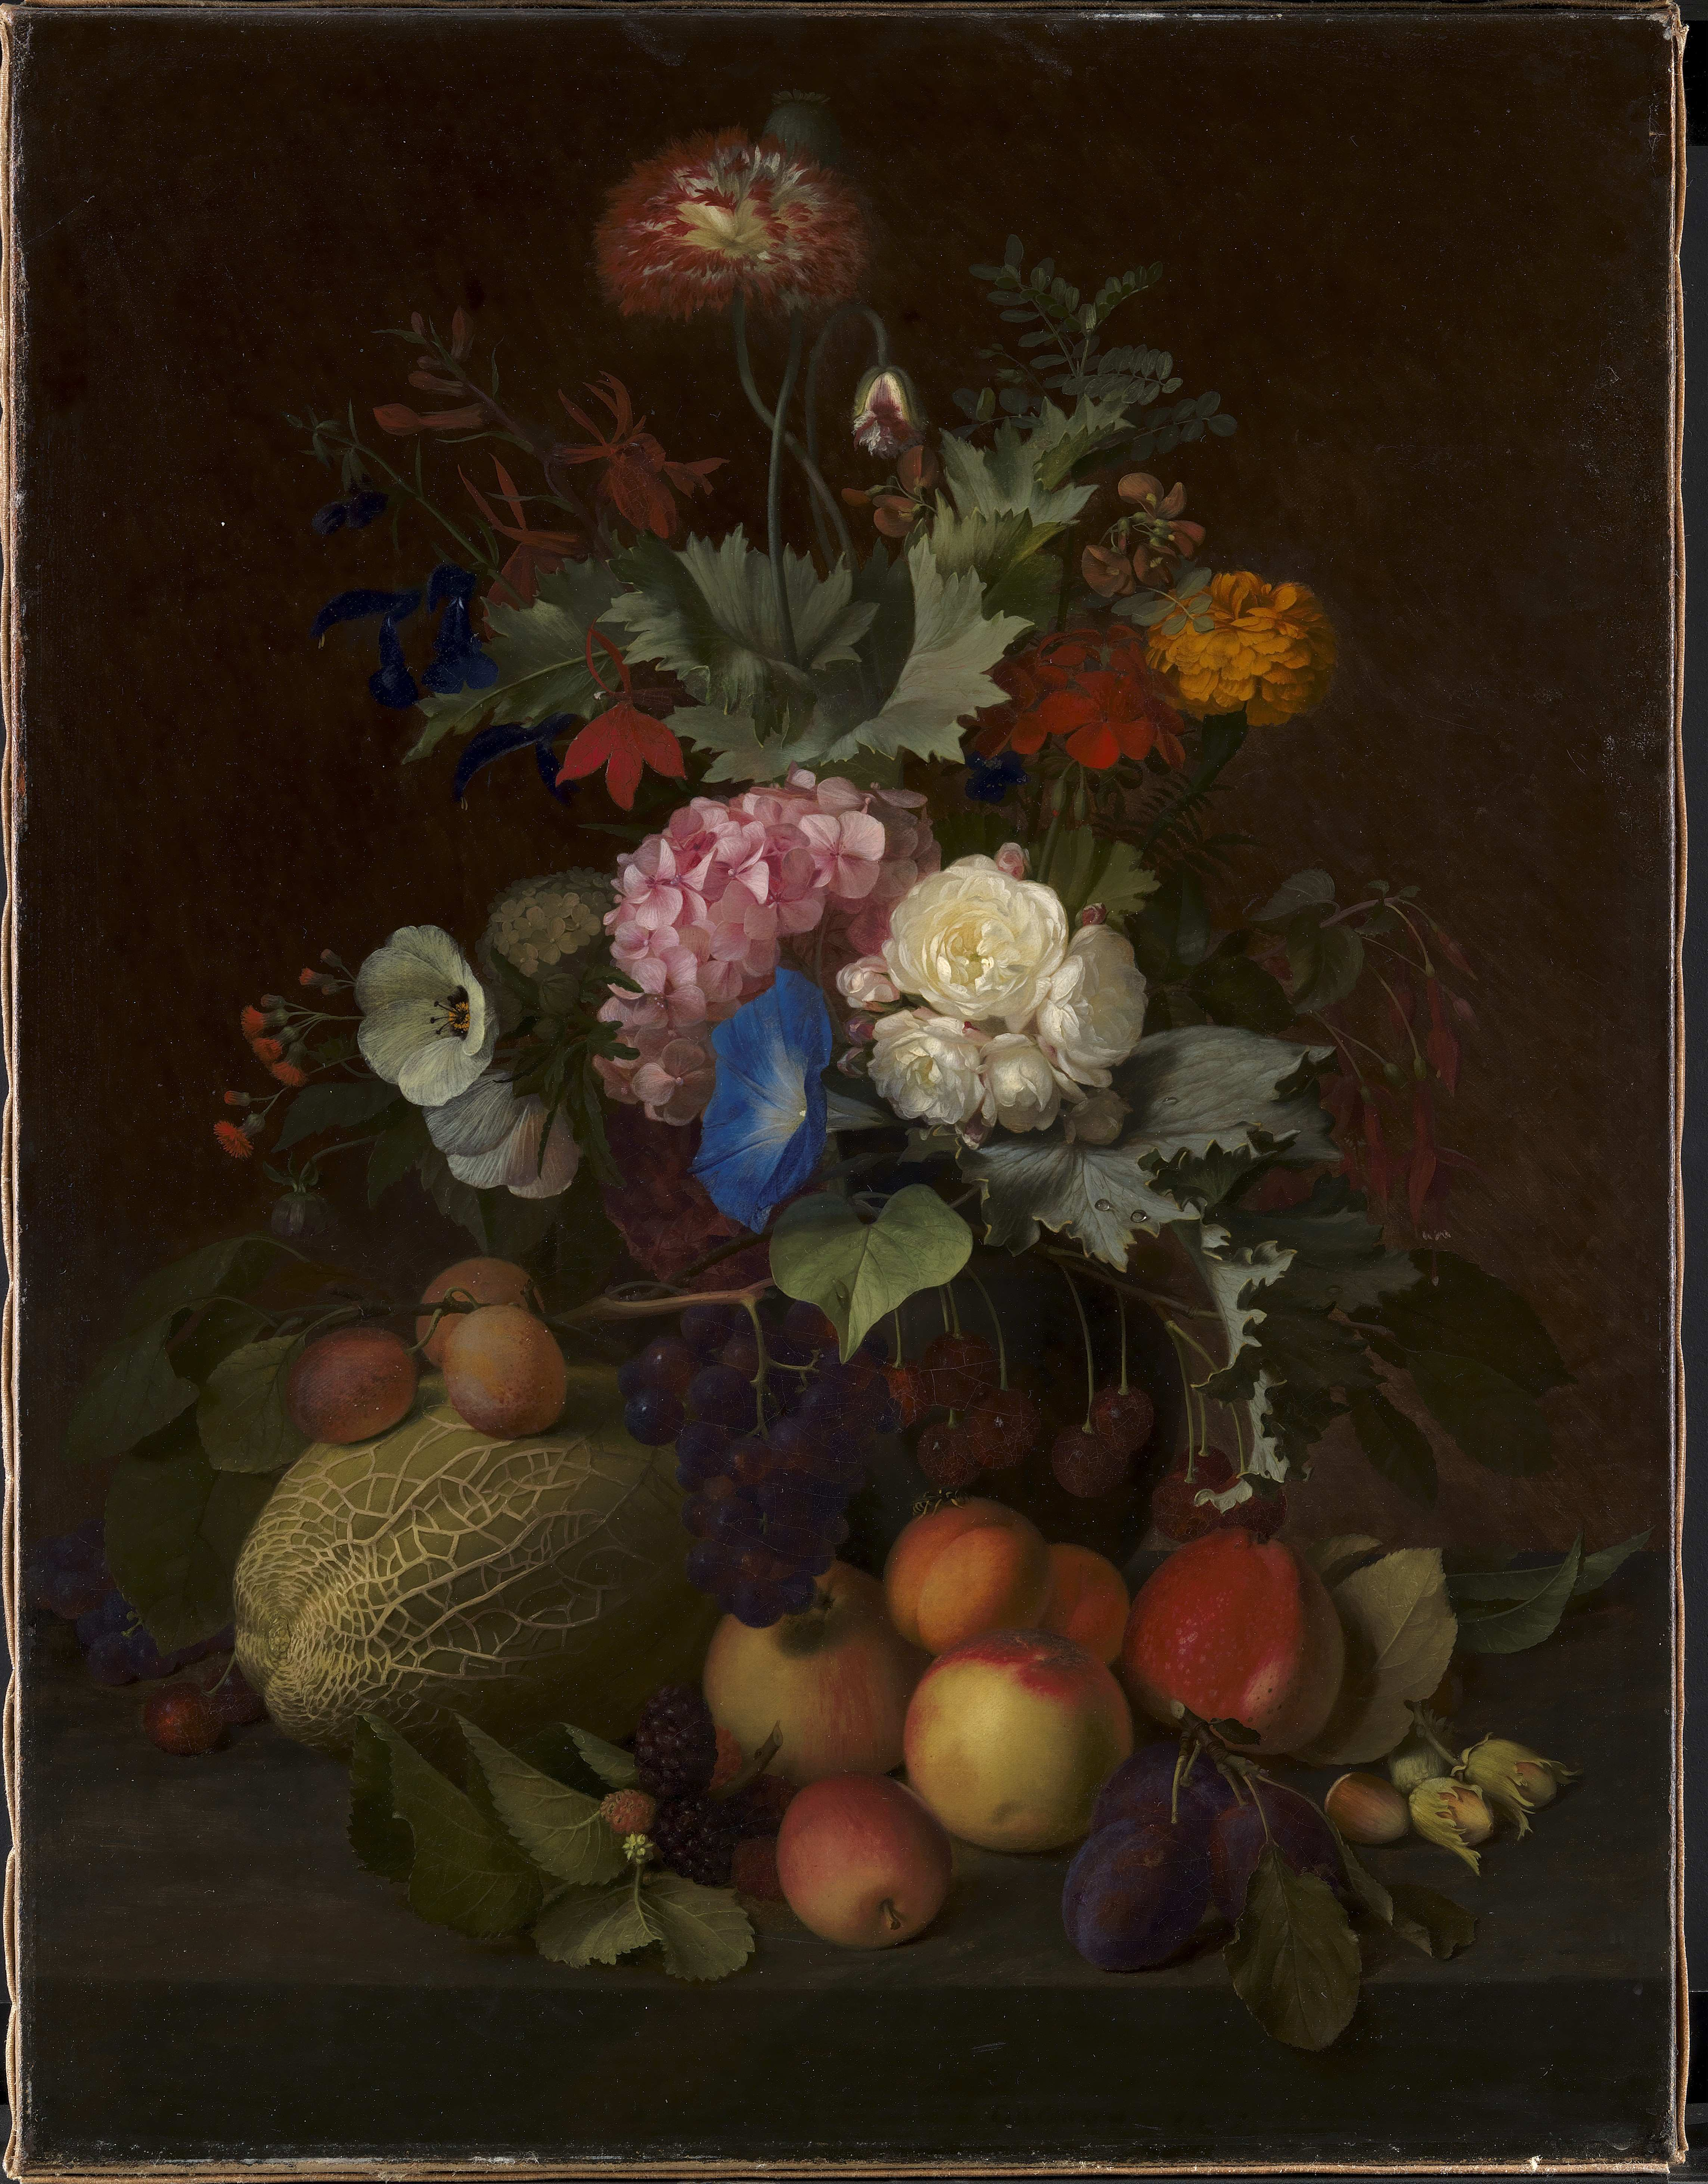 File O D Ottesen Still Life with Fruit and Flowers KMS614